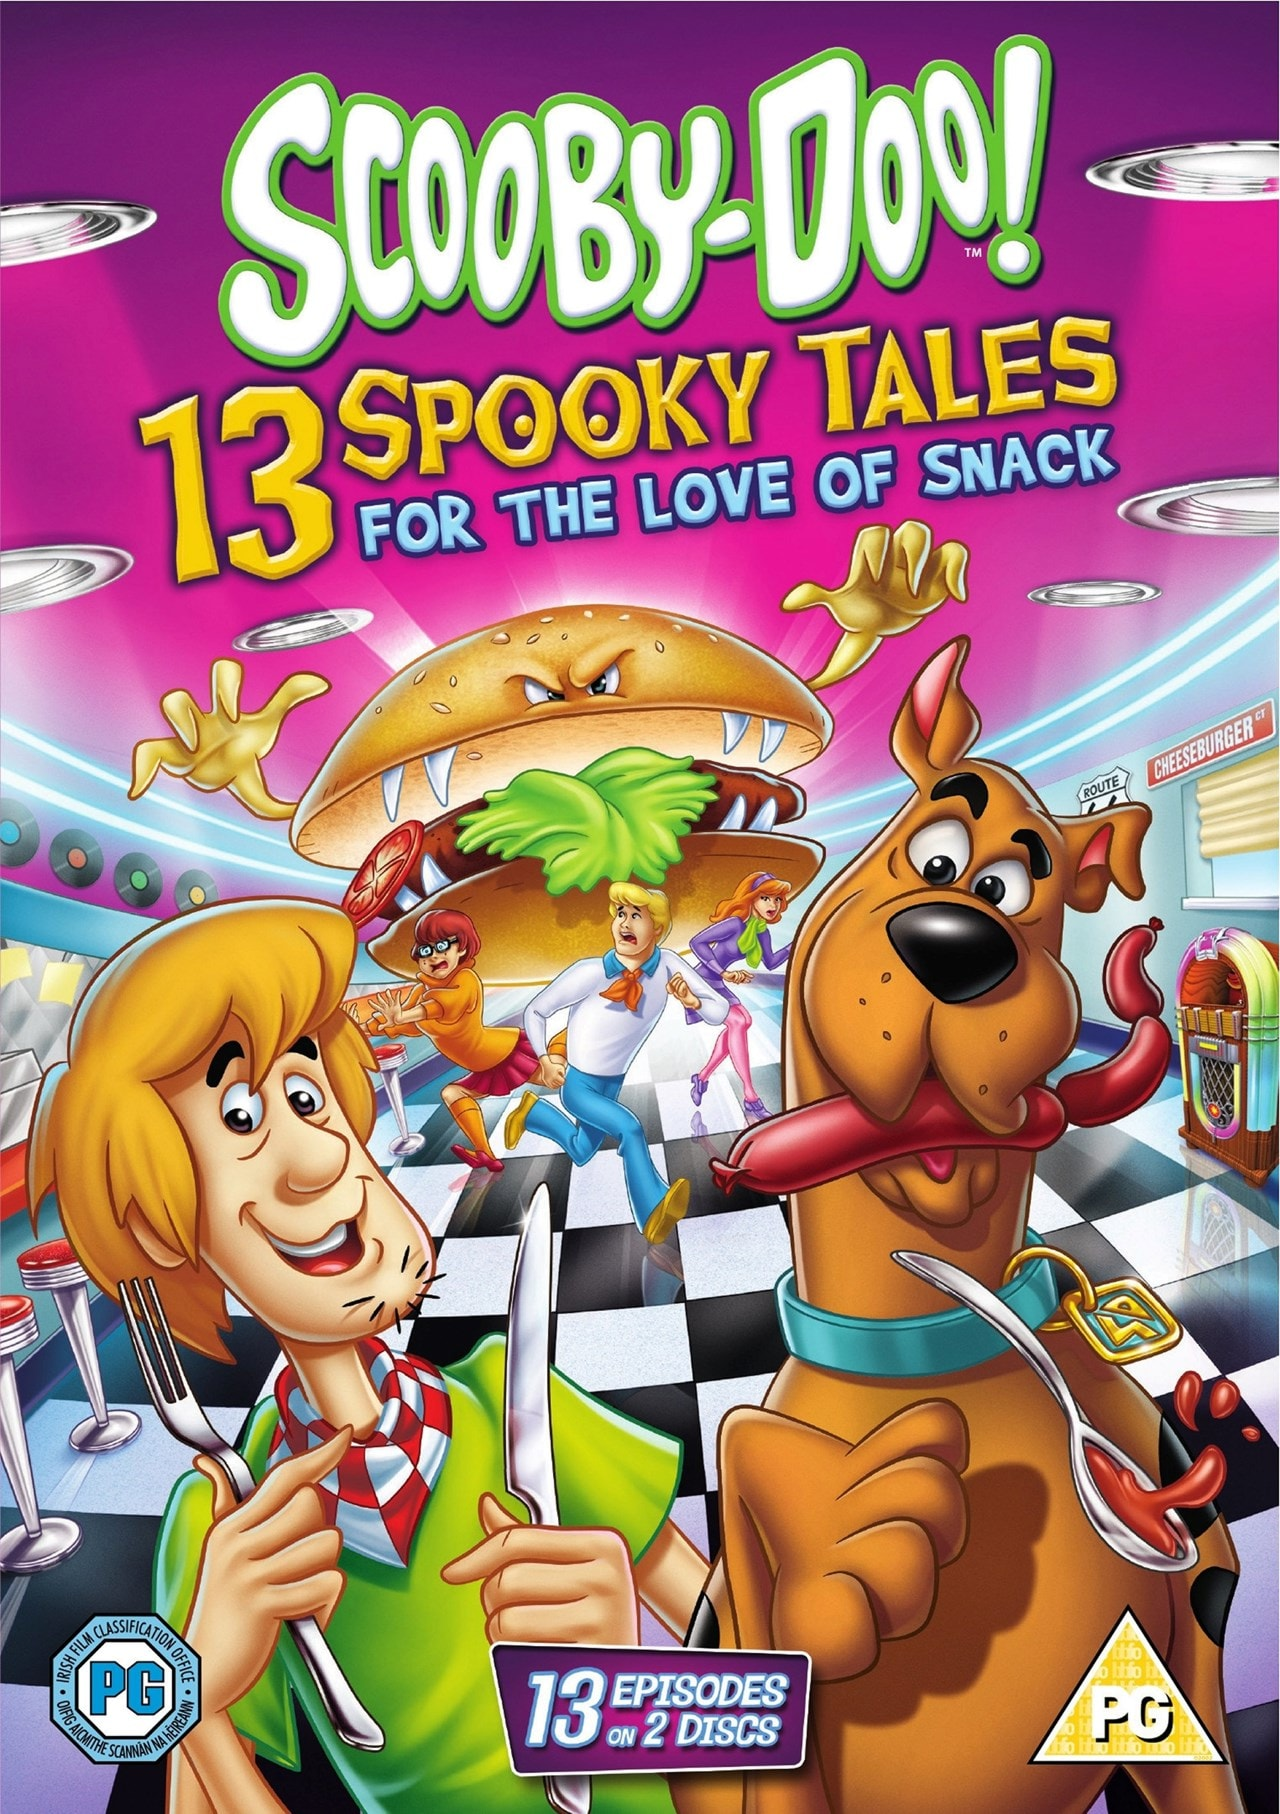 Scooby-Doo: 13 Spooky Tales - For the Love of Snack - 1